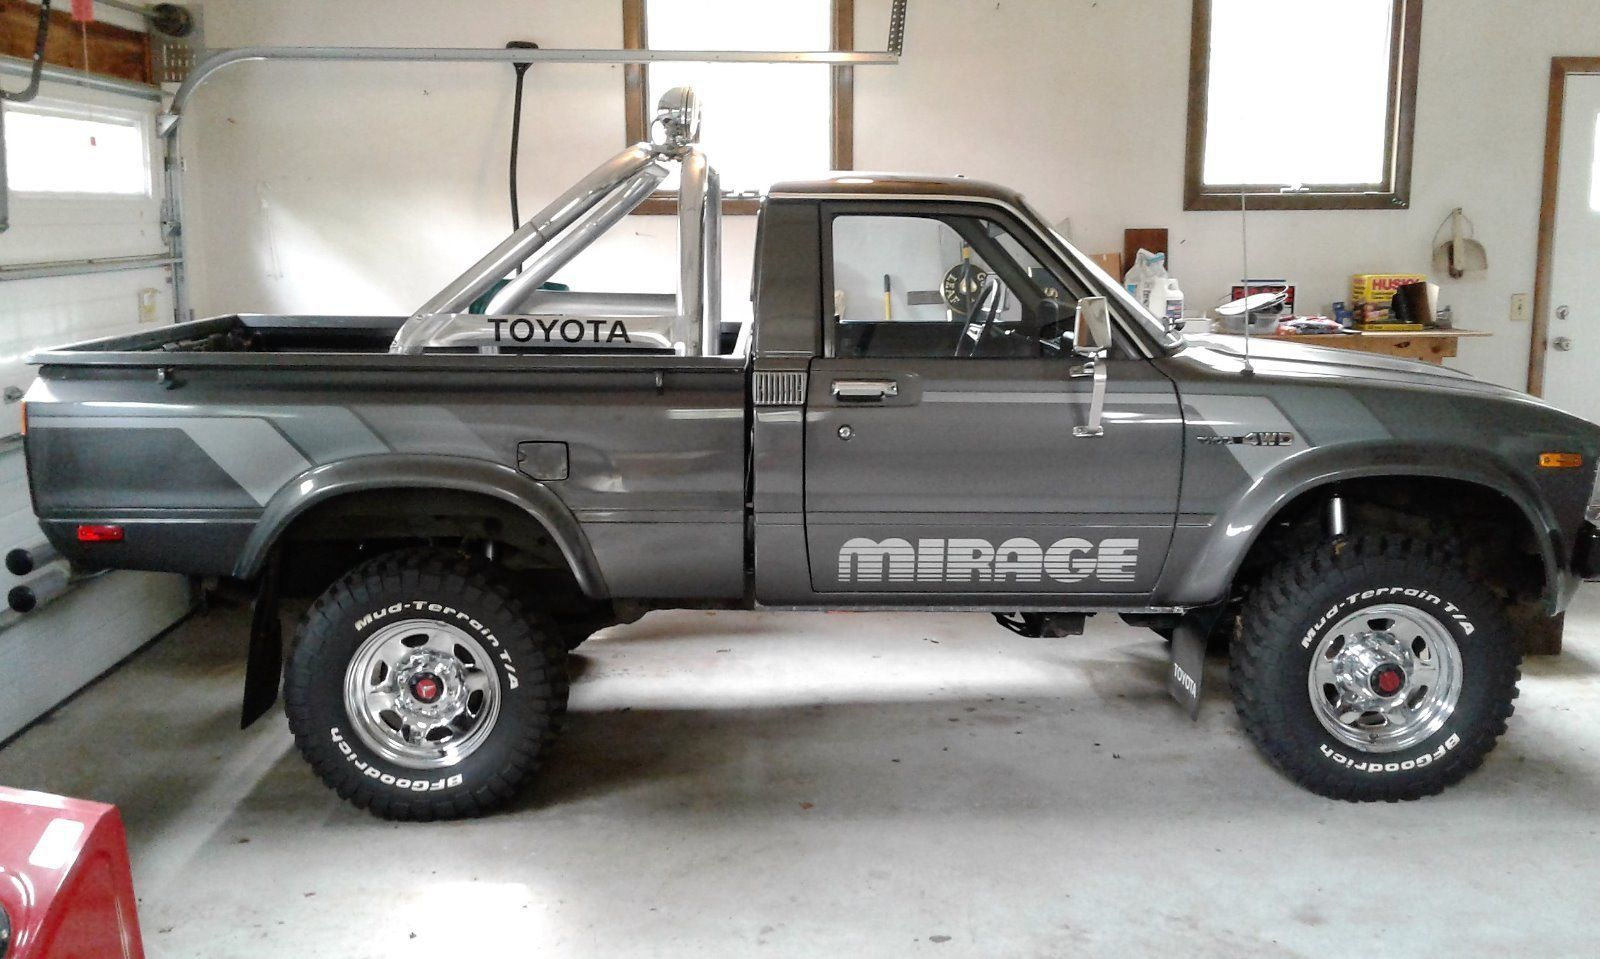 1983 toyota sr 5 4x4 pickup truck mirage limited edition. Black Bedroom Furniture Sets. Home Design Ideas